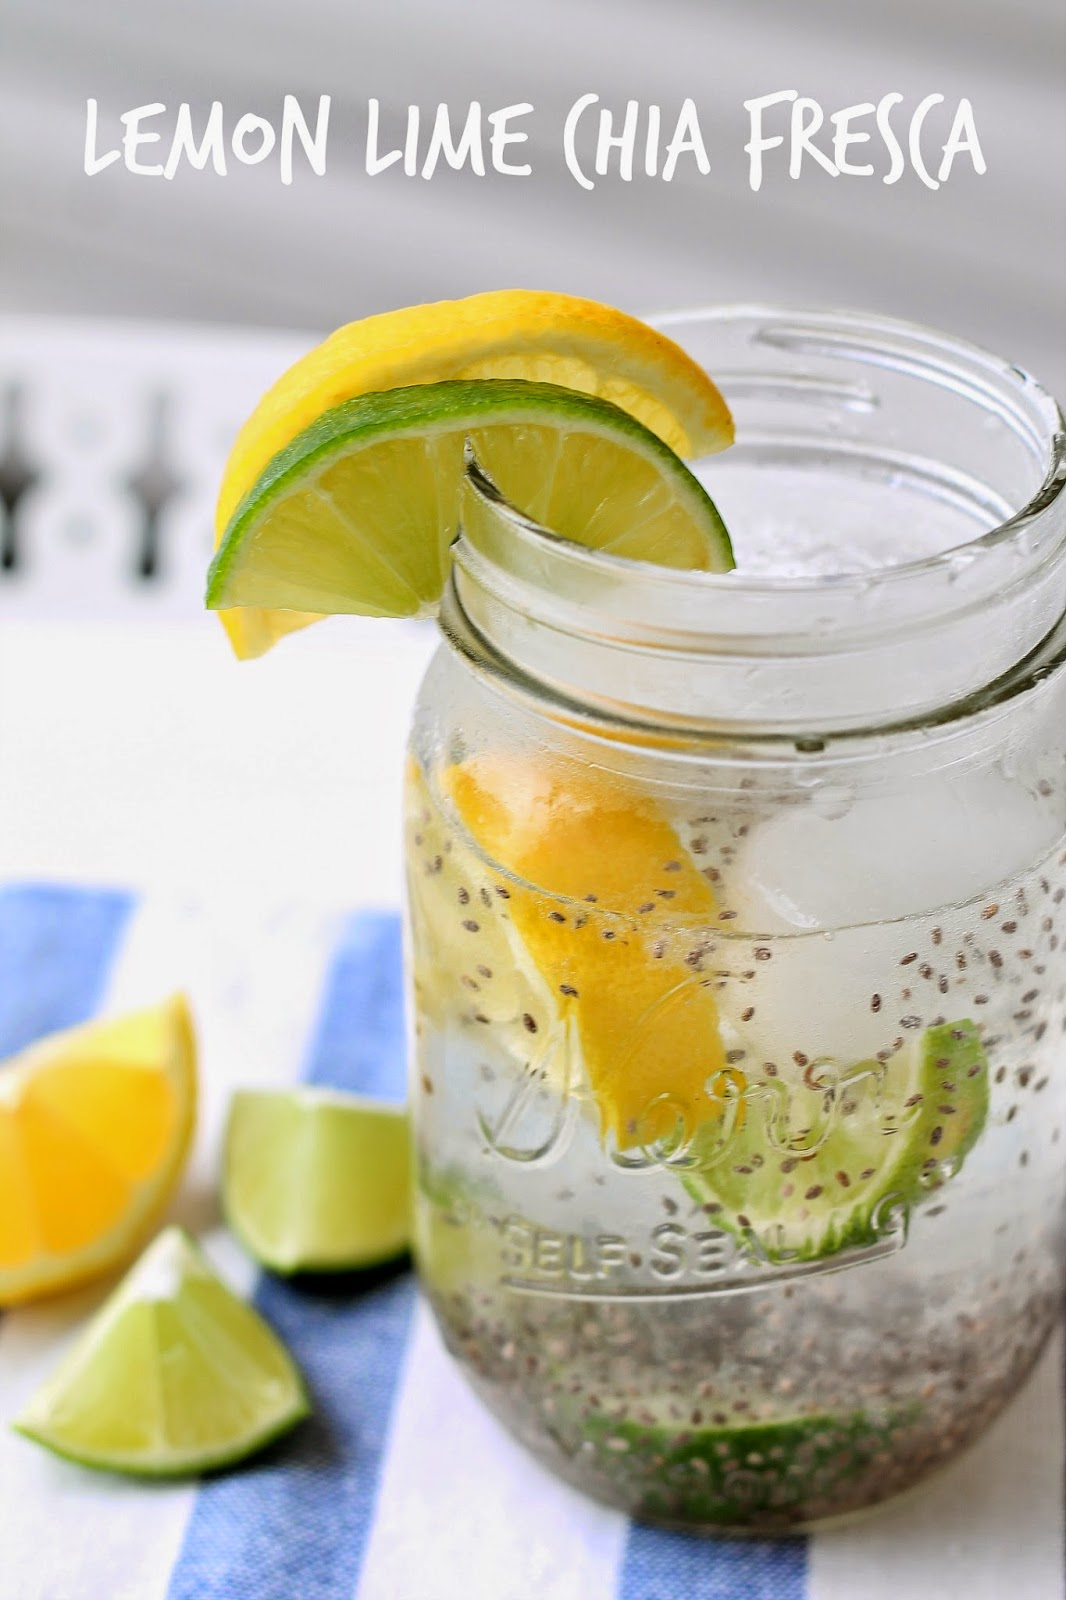 Louisiana Bride: Lemon Lime Chia Fresca